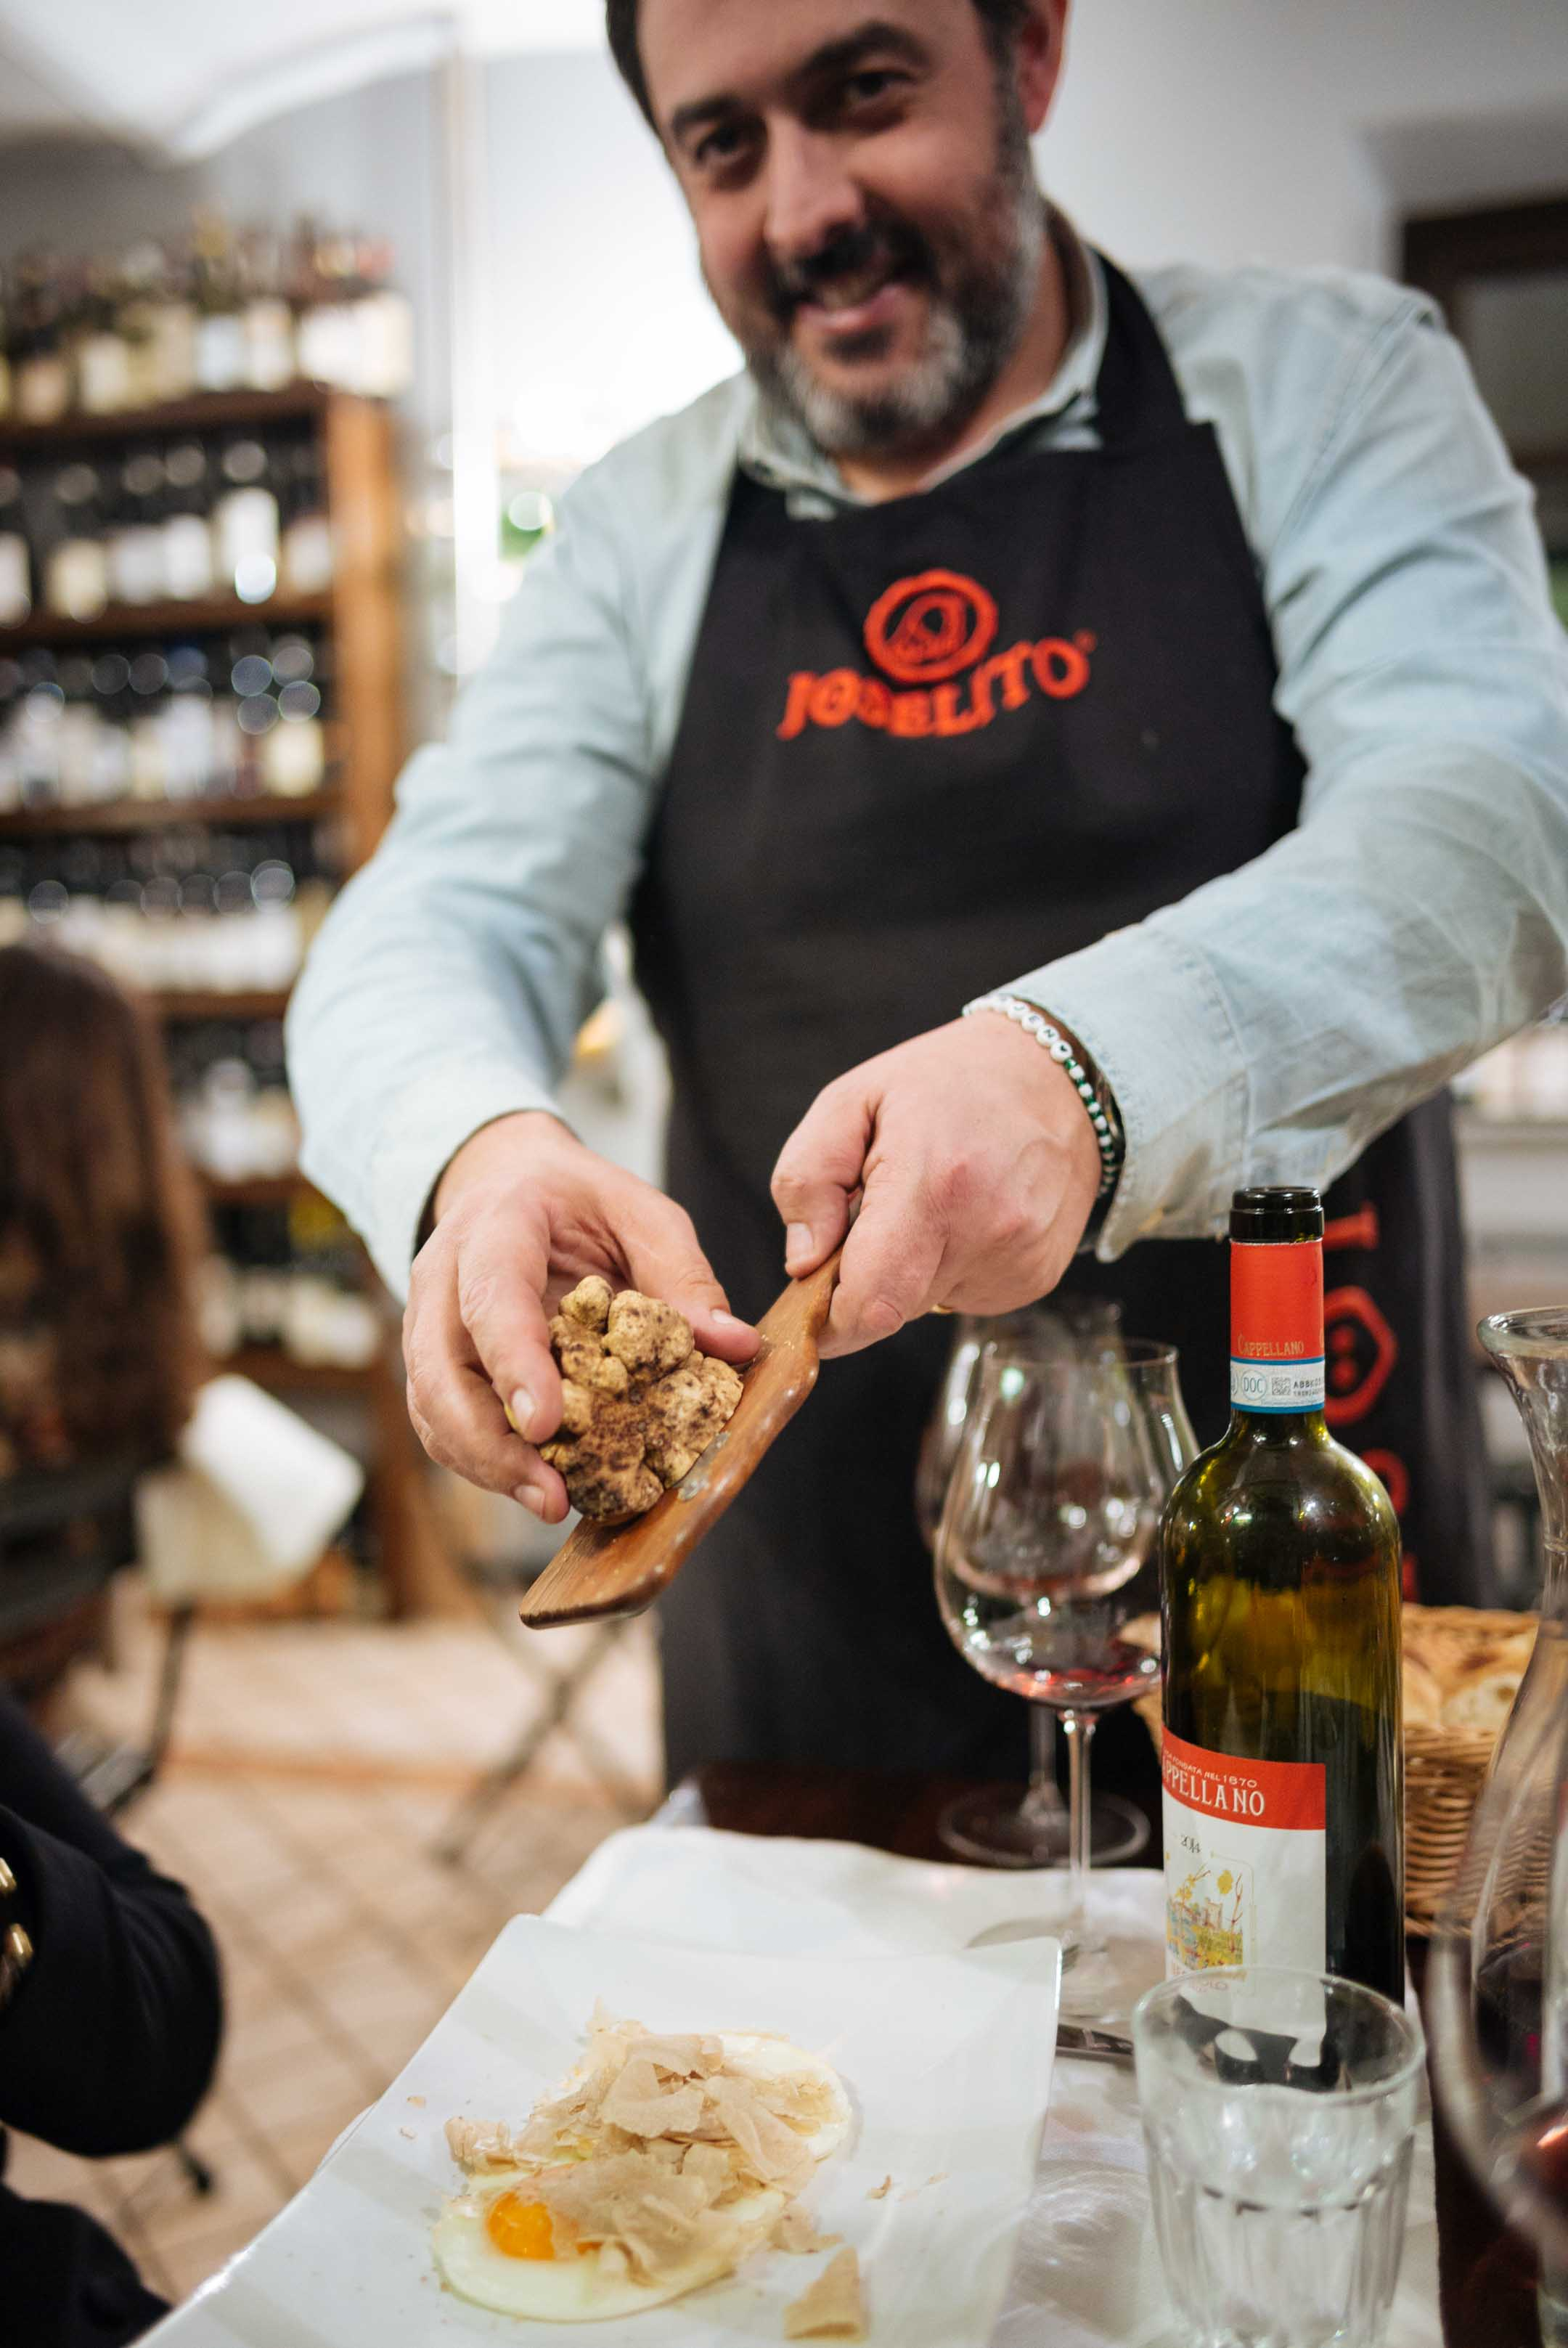 Go to Vinoteca Centro Storico in Serralunga for good food and amazing local wines and champagnes - ask Alessio tops pasta and eggs with fresh shaved truffles